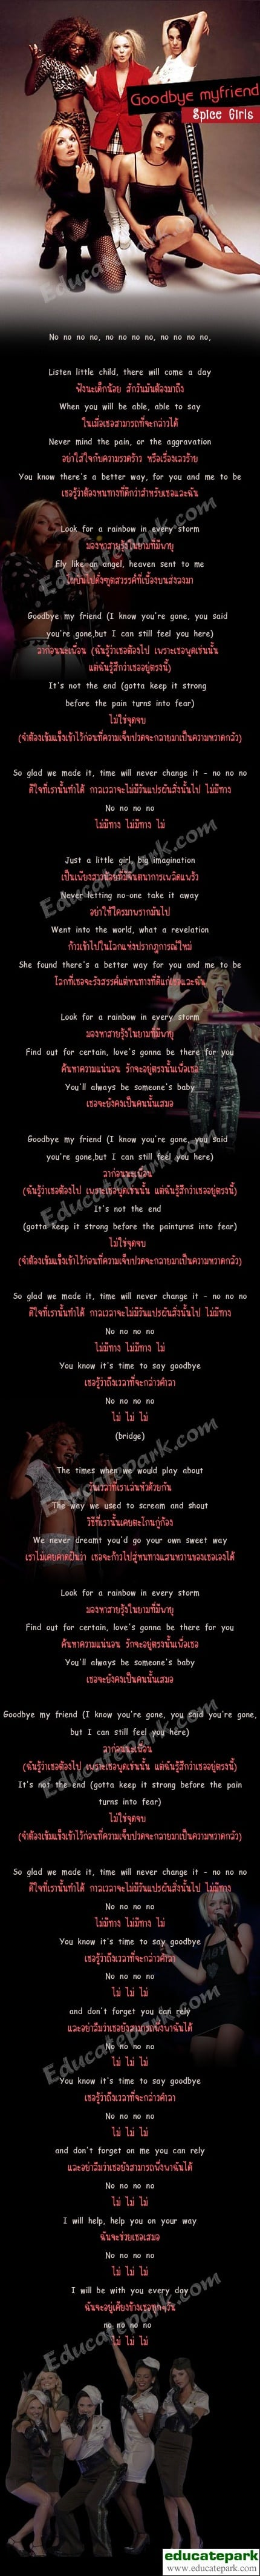 แปลเพลง Goodbye my friend - Spice Girl